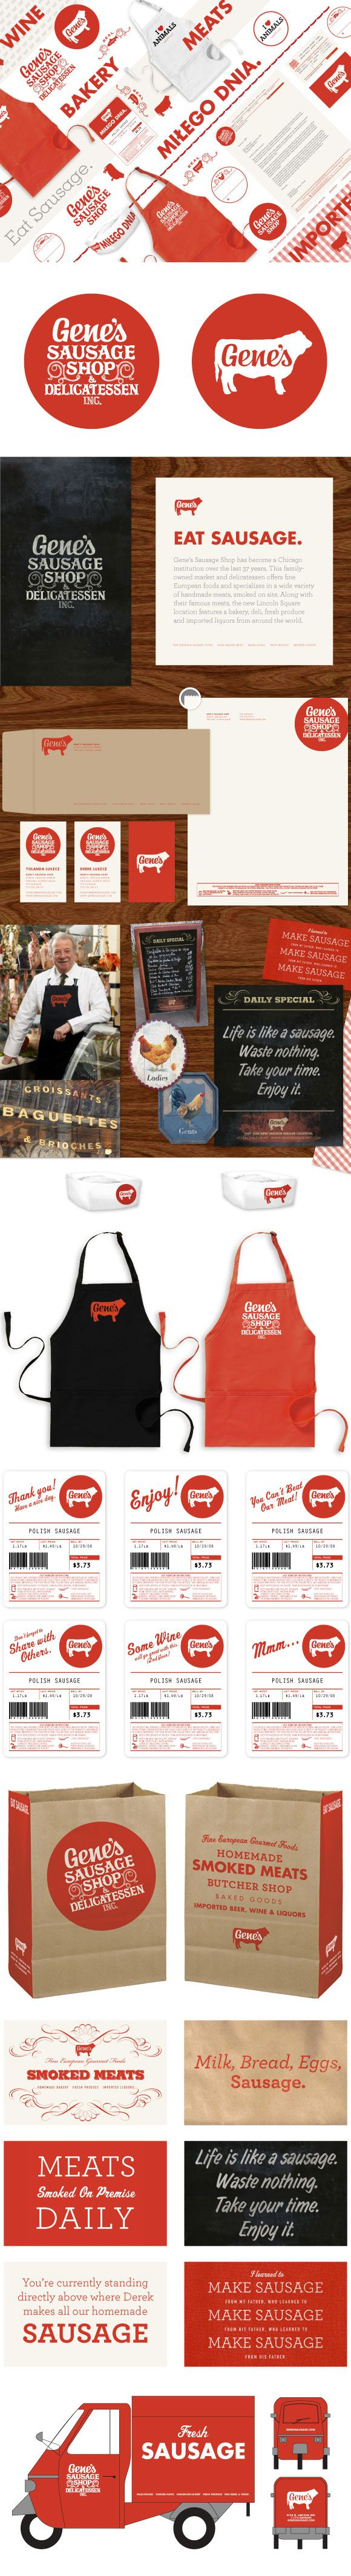 Gene's Sausage Shop. Let us put together a branding solution package for